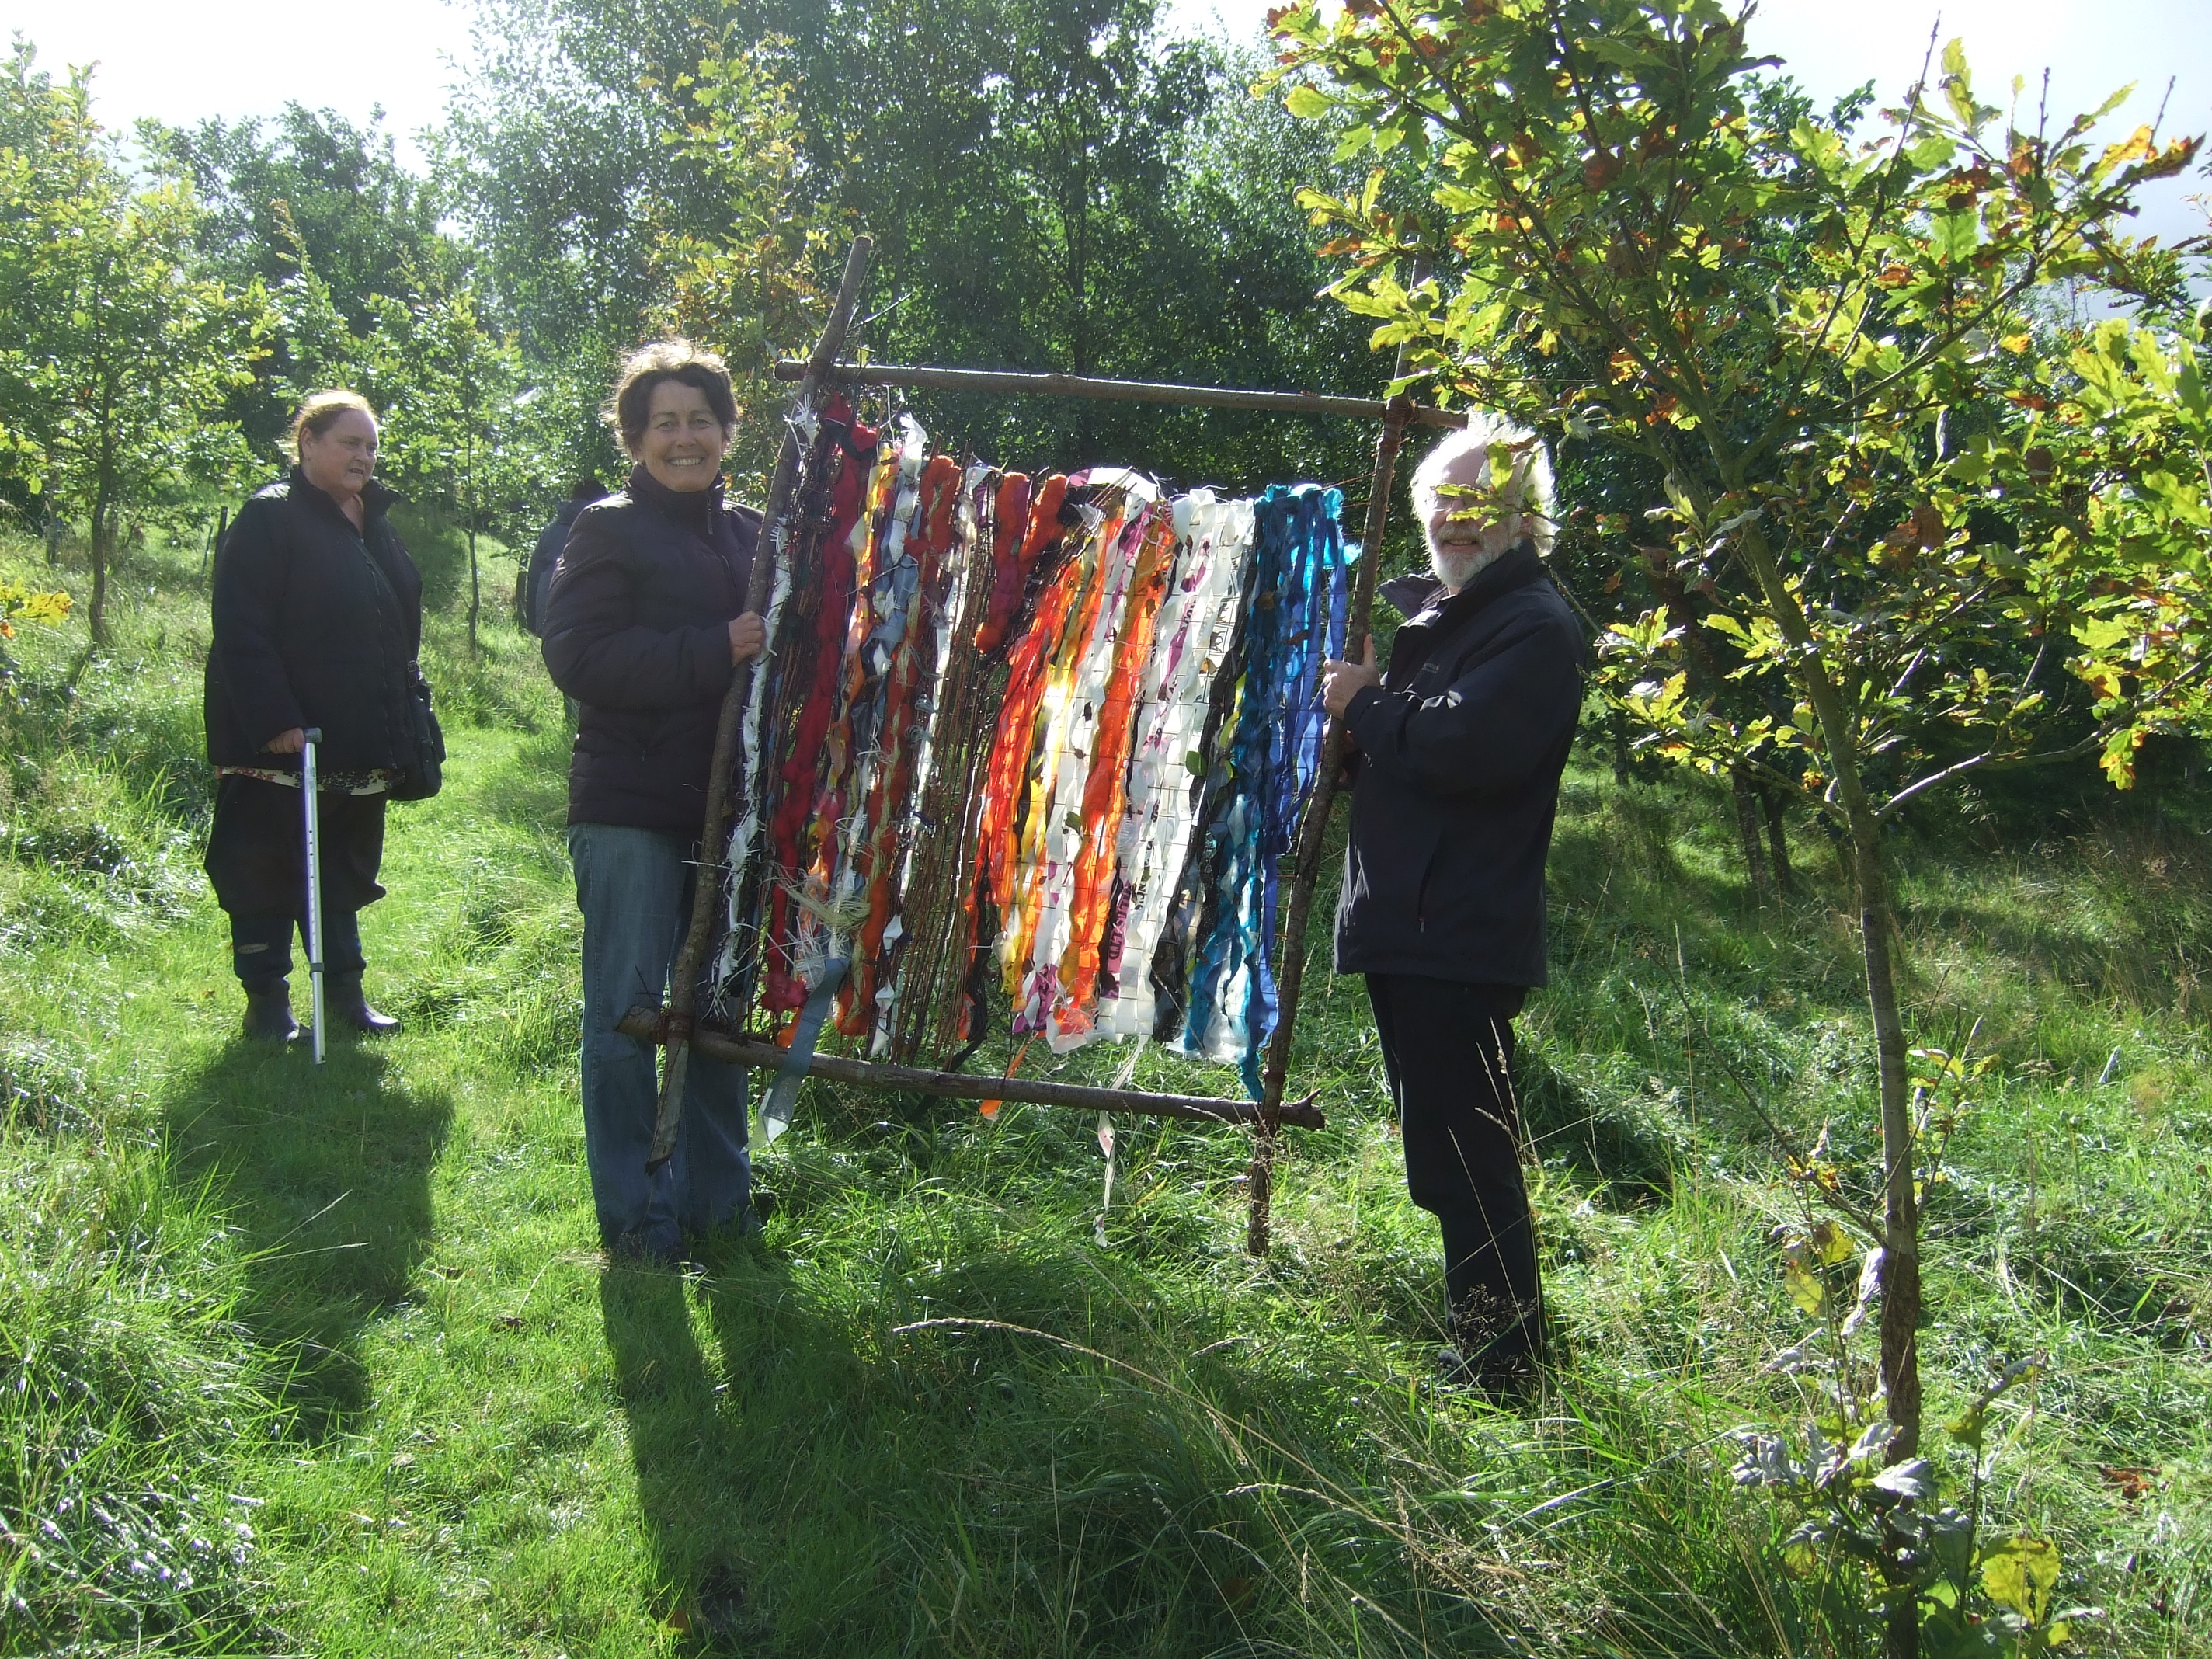 Weaving workshops at Cronkshaw Fold